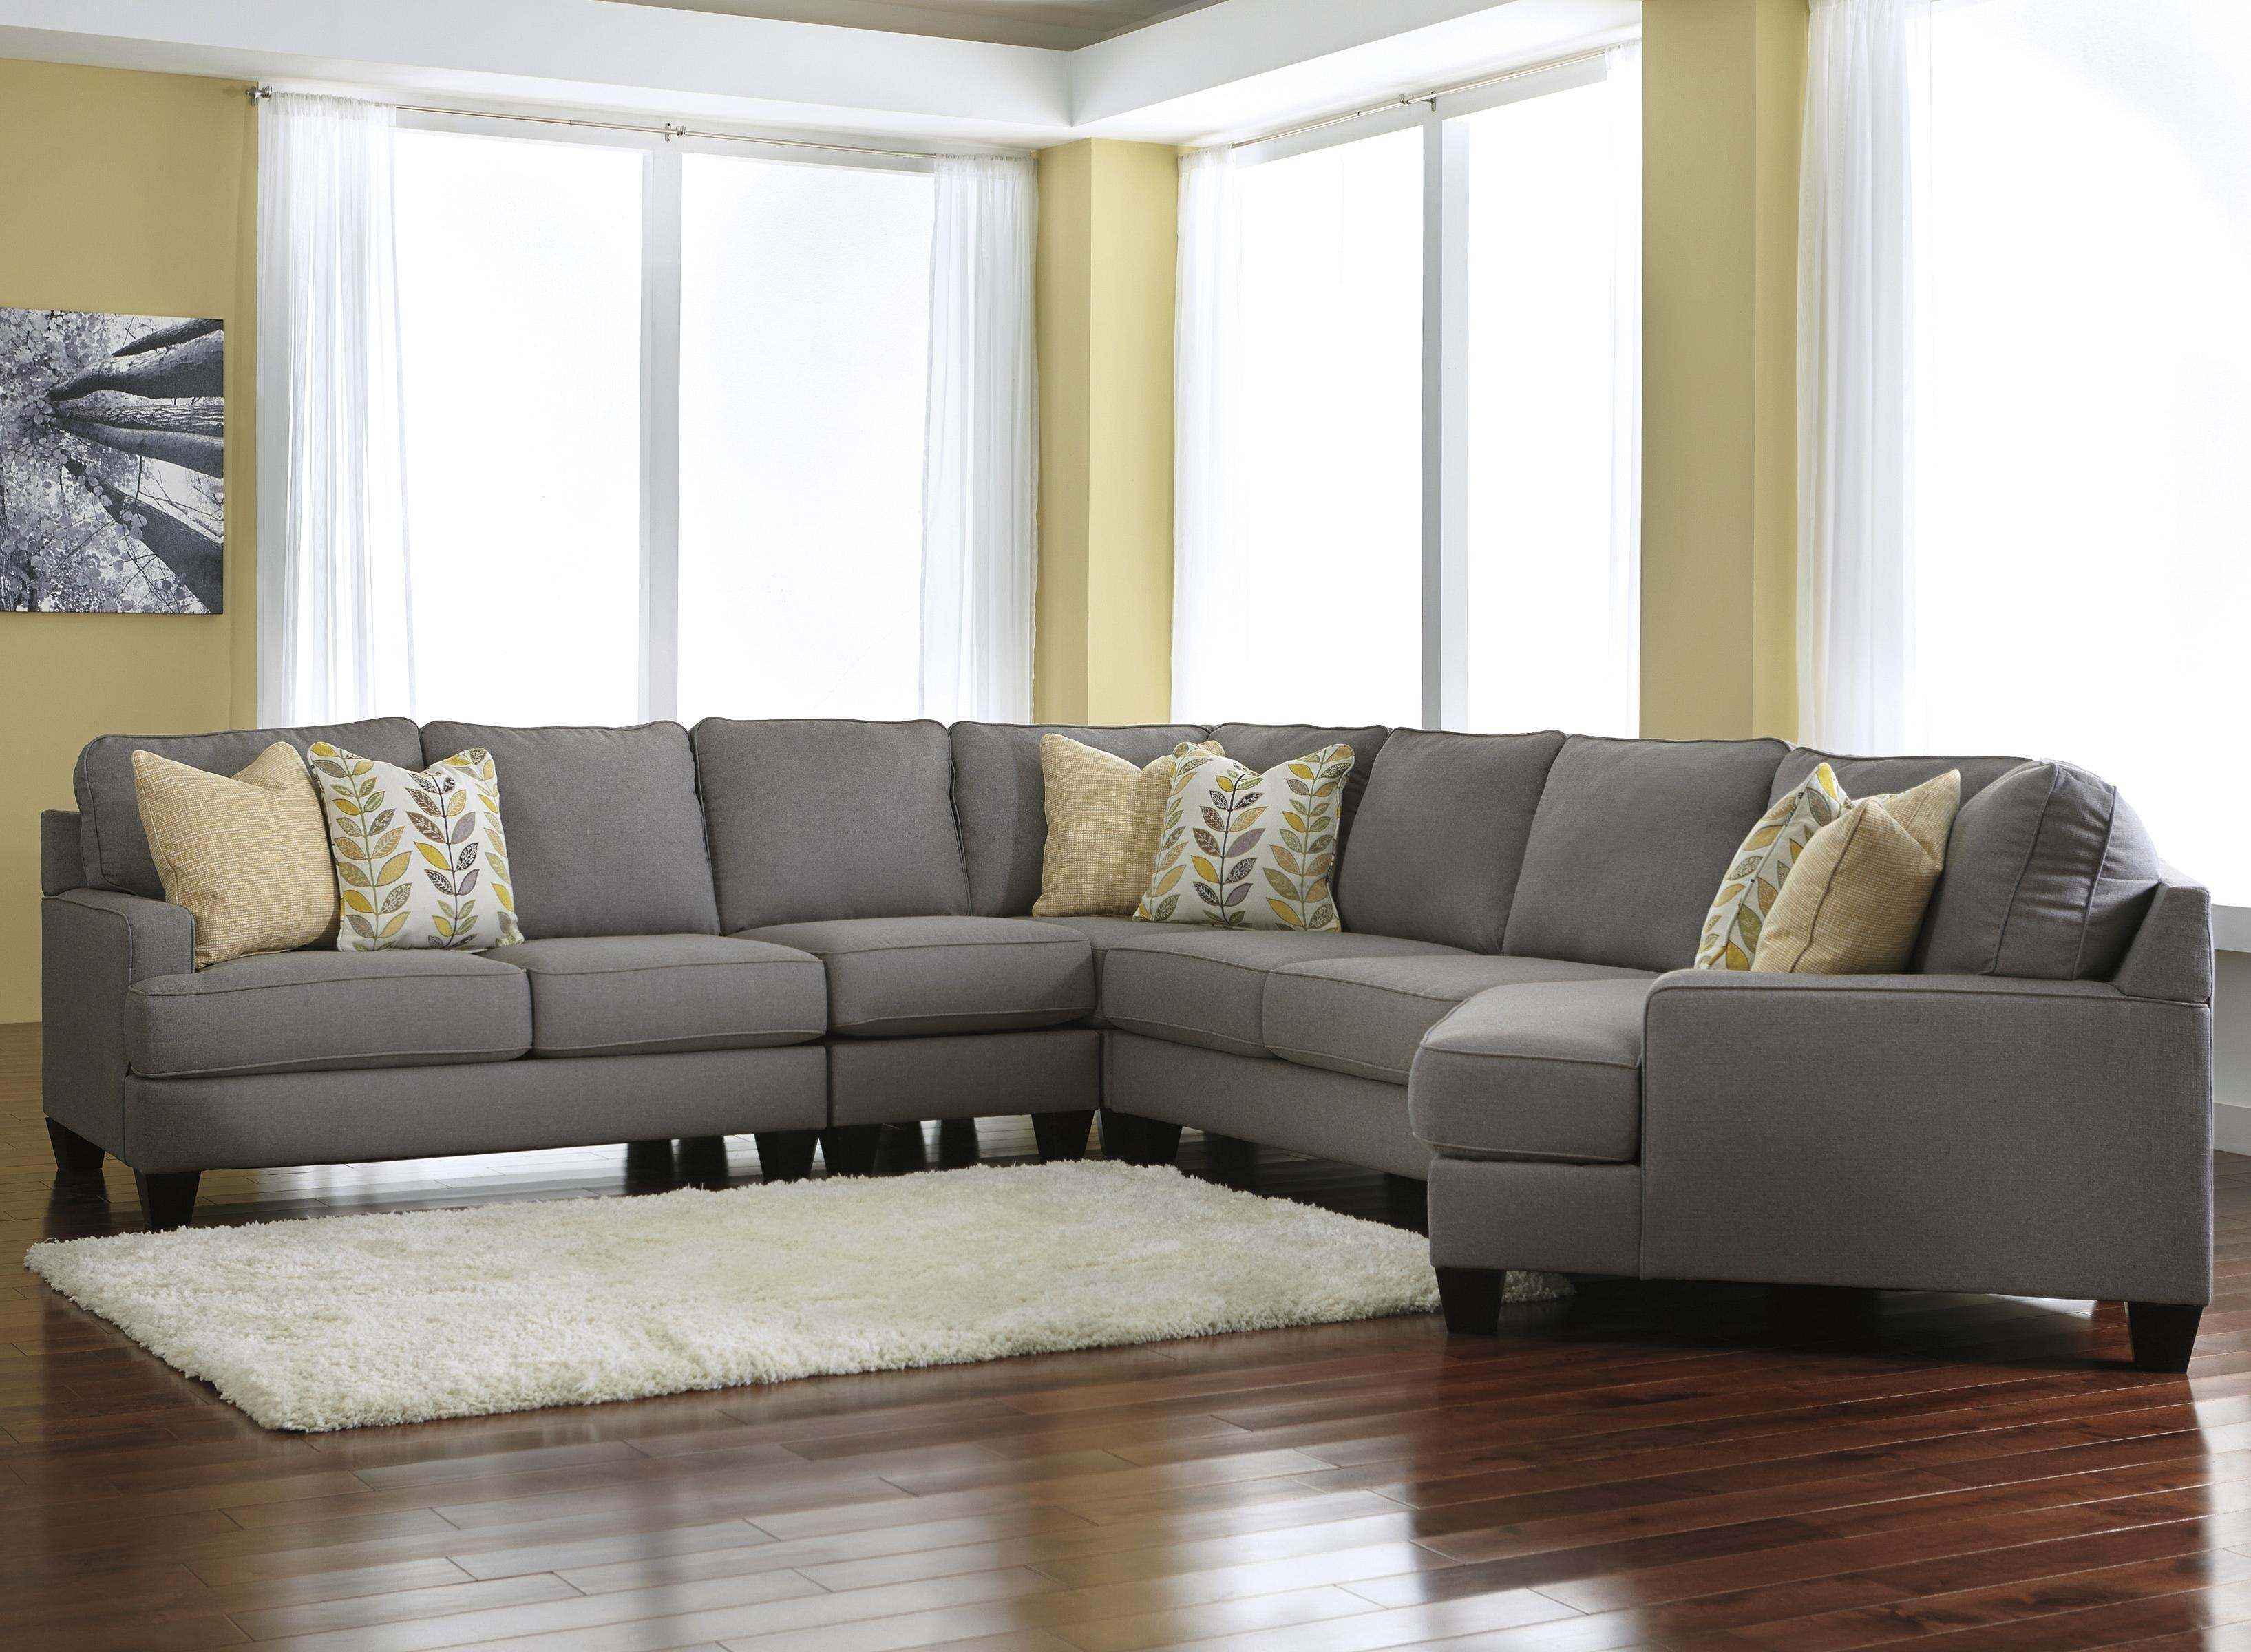 Chamberly – Alloy Modern 5 Piece Sectional Sofa With Right Cuddler Regarding Royal Furniture Sectional Sofas (View 7 of 10)